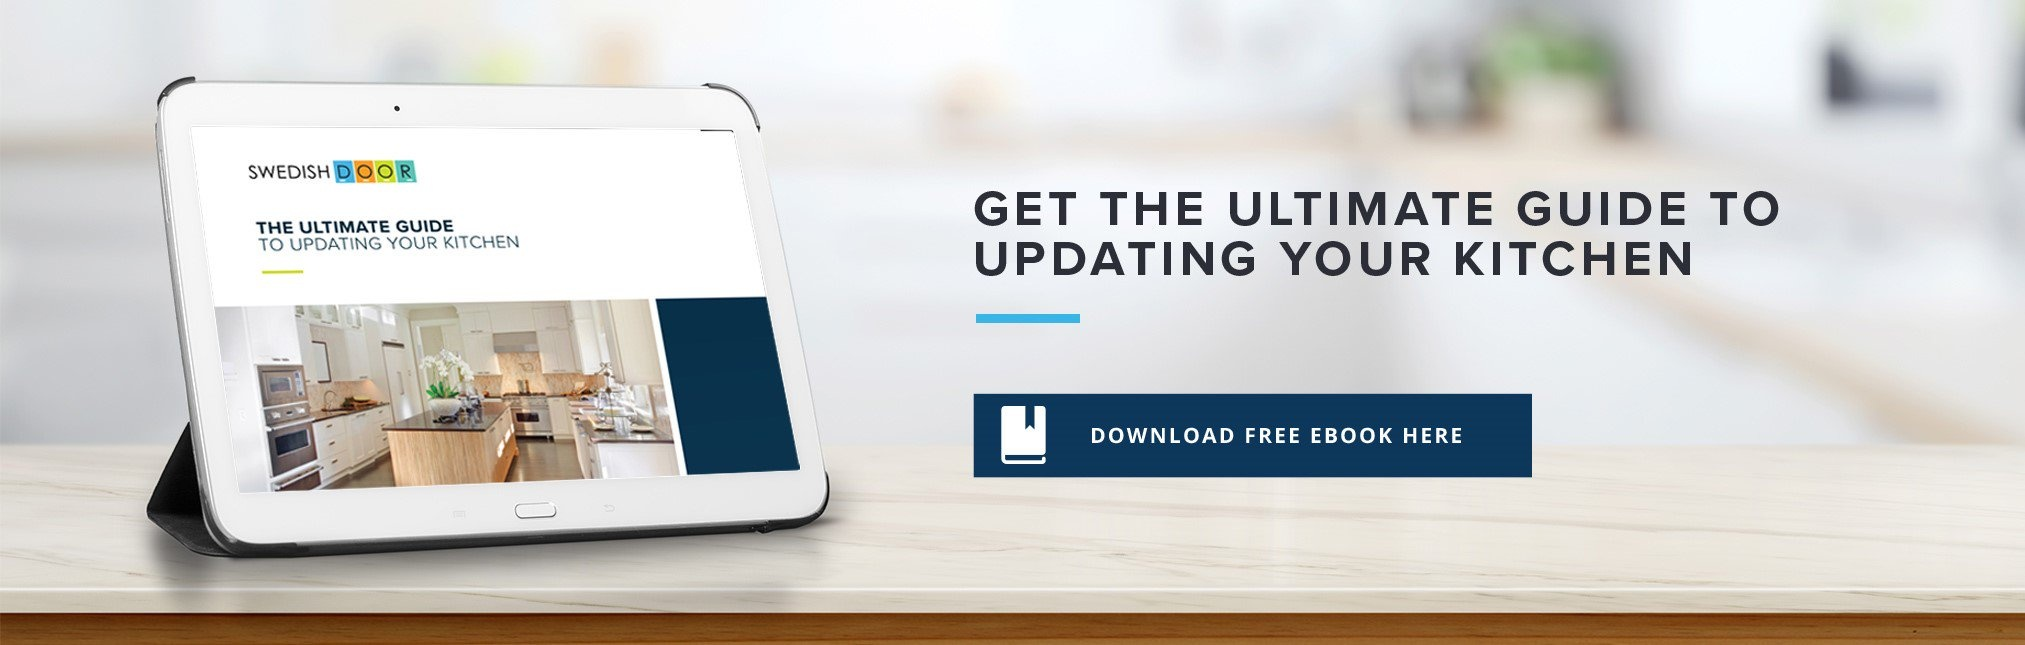 Download the Ultimate Guide to Updating Your Kitchen Now